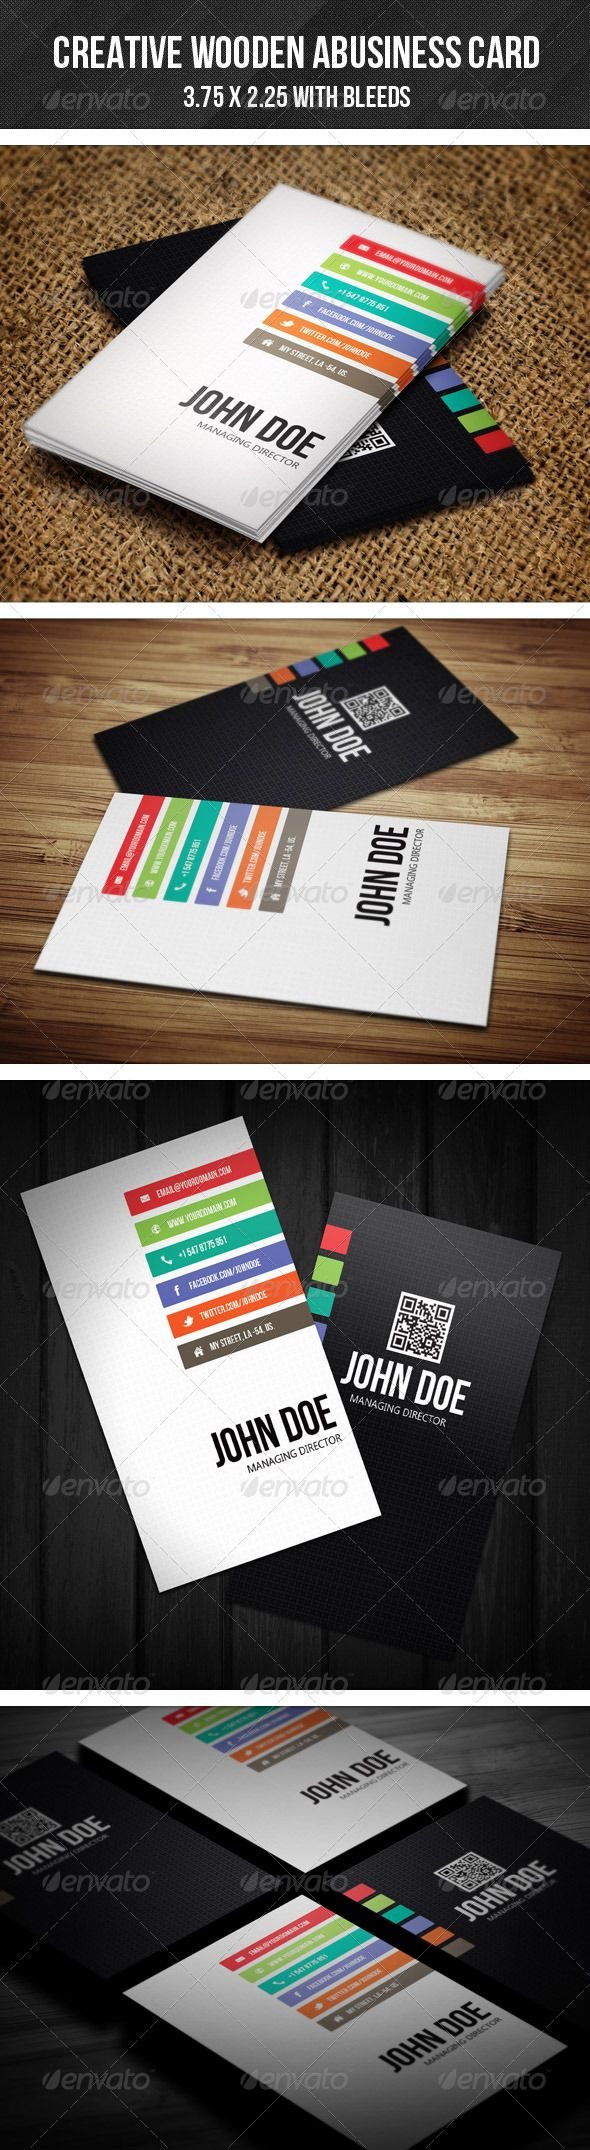 Creative Business Card - 11 - Creative Business Cards